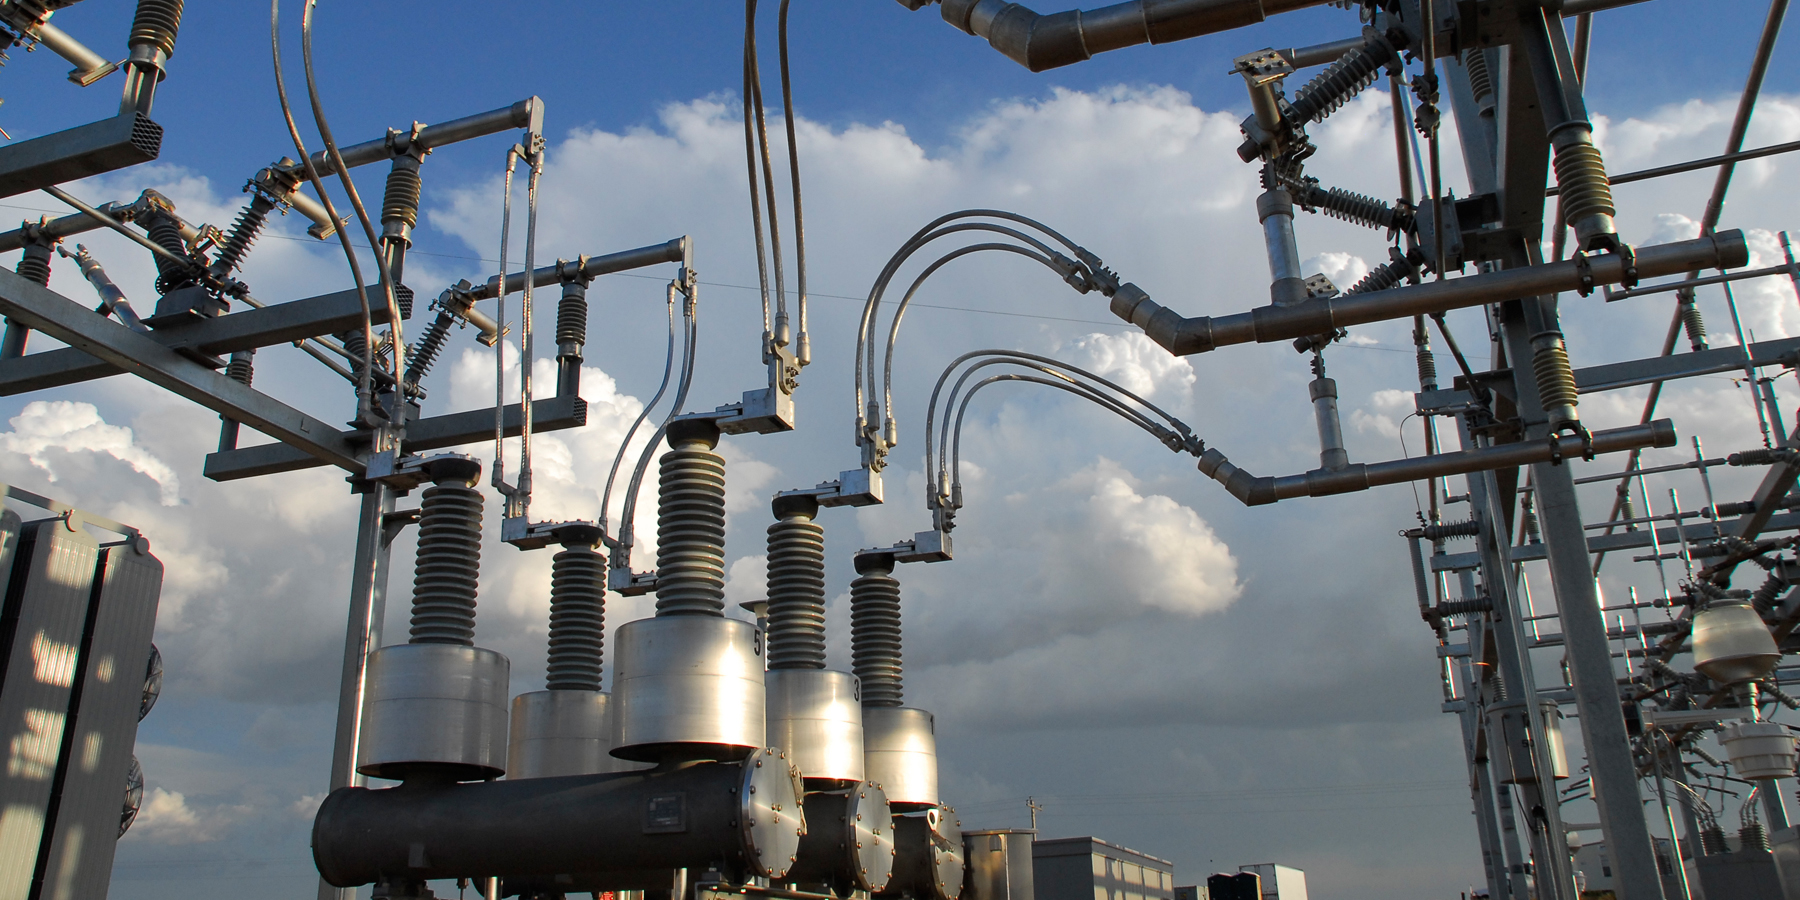 Published in Engineering Inc: Power Transmission Sector Exhibiting Strong, Durable Growth